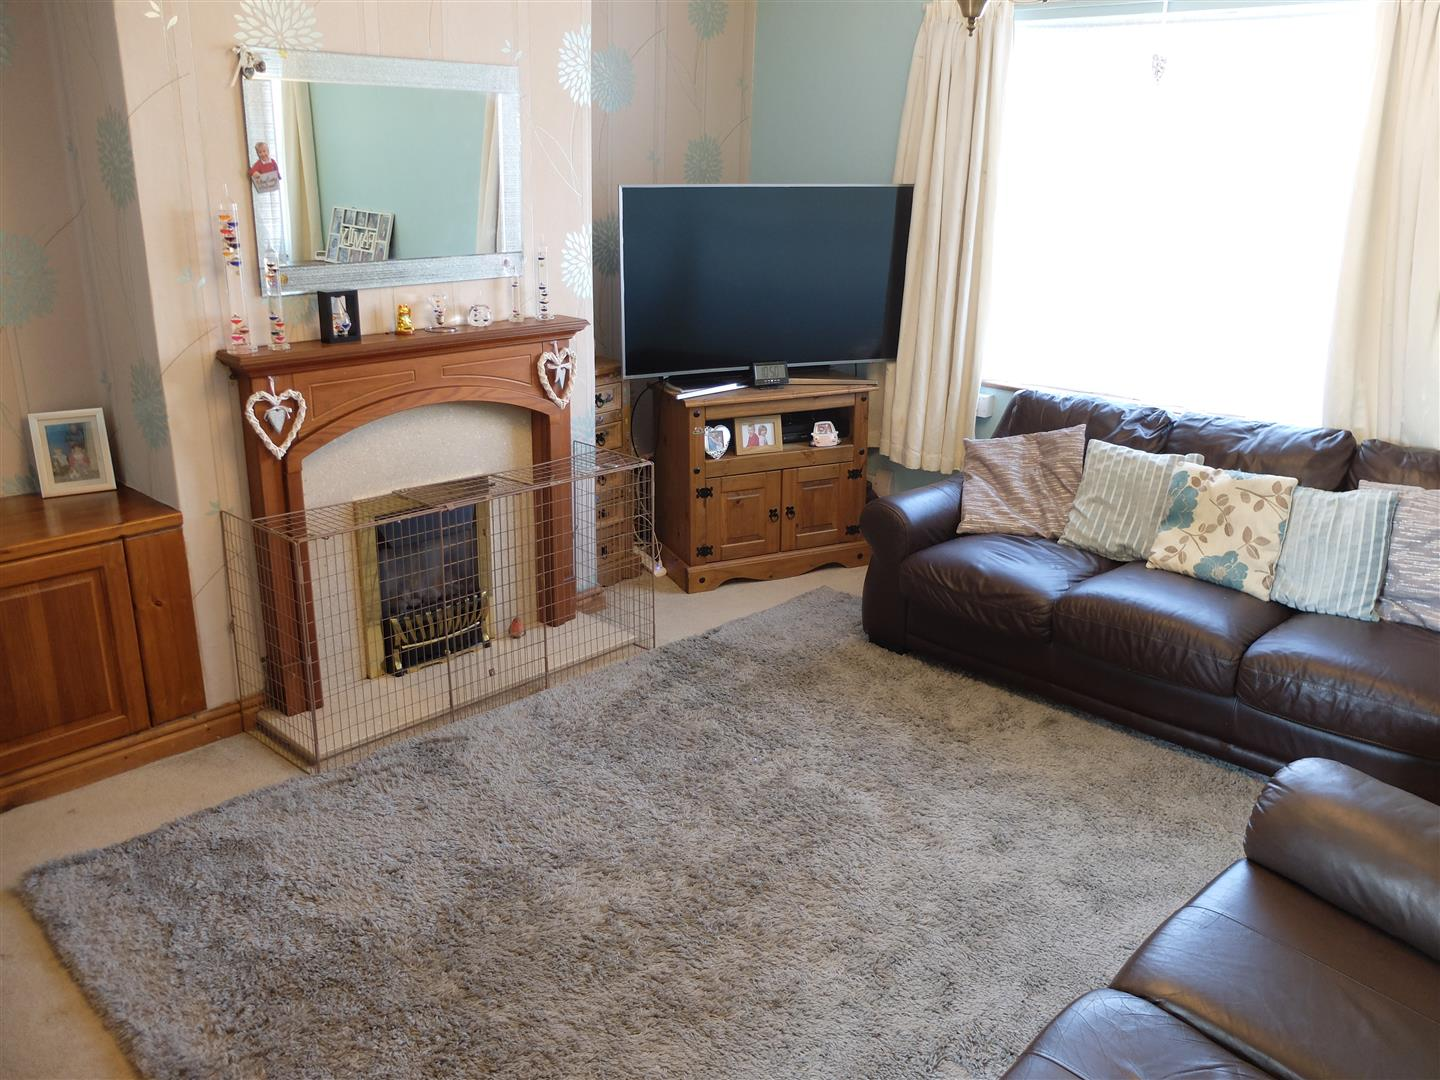 3 Bedrooms House - End Terrace For Sale 24 Deer Park Road Carlisle